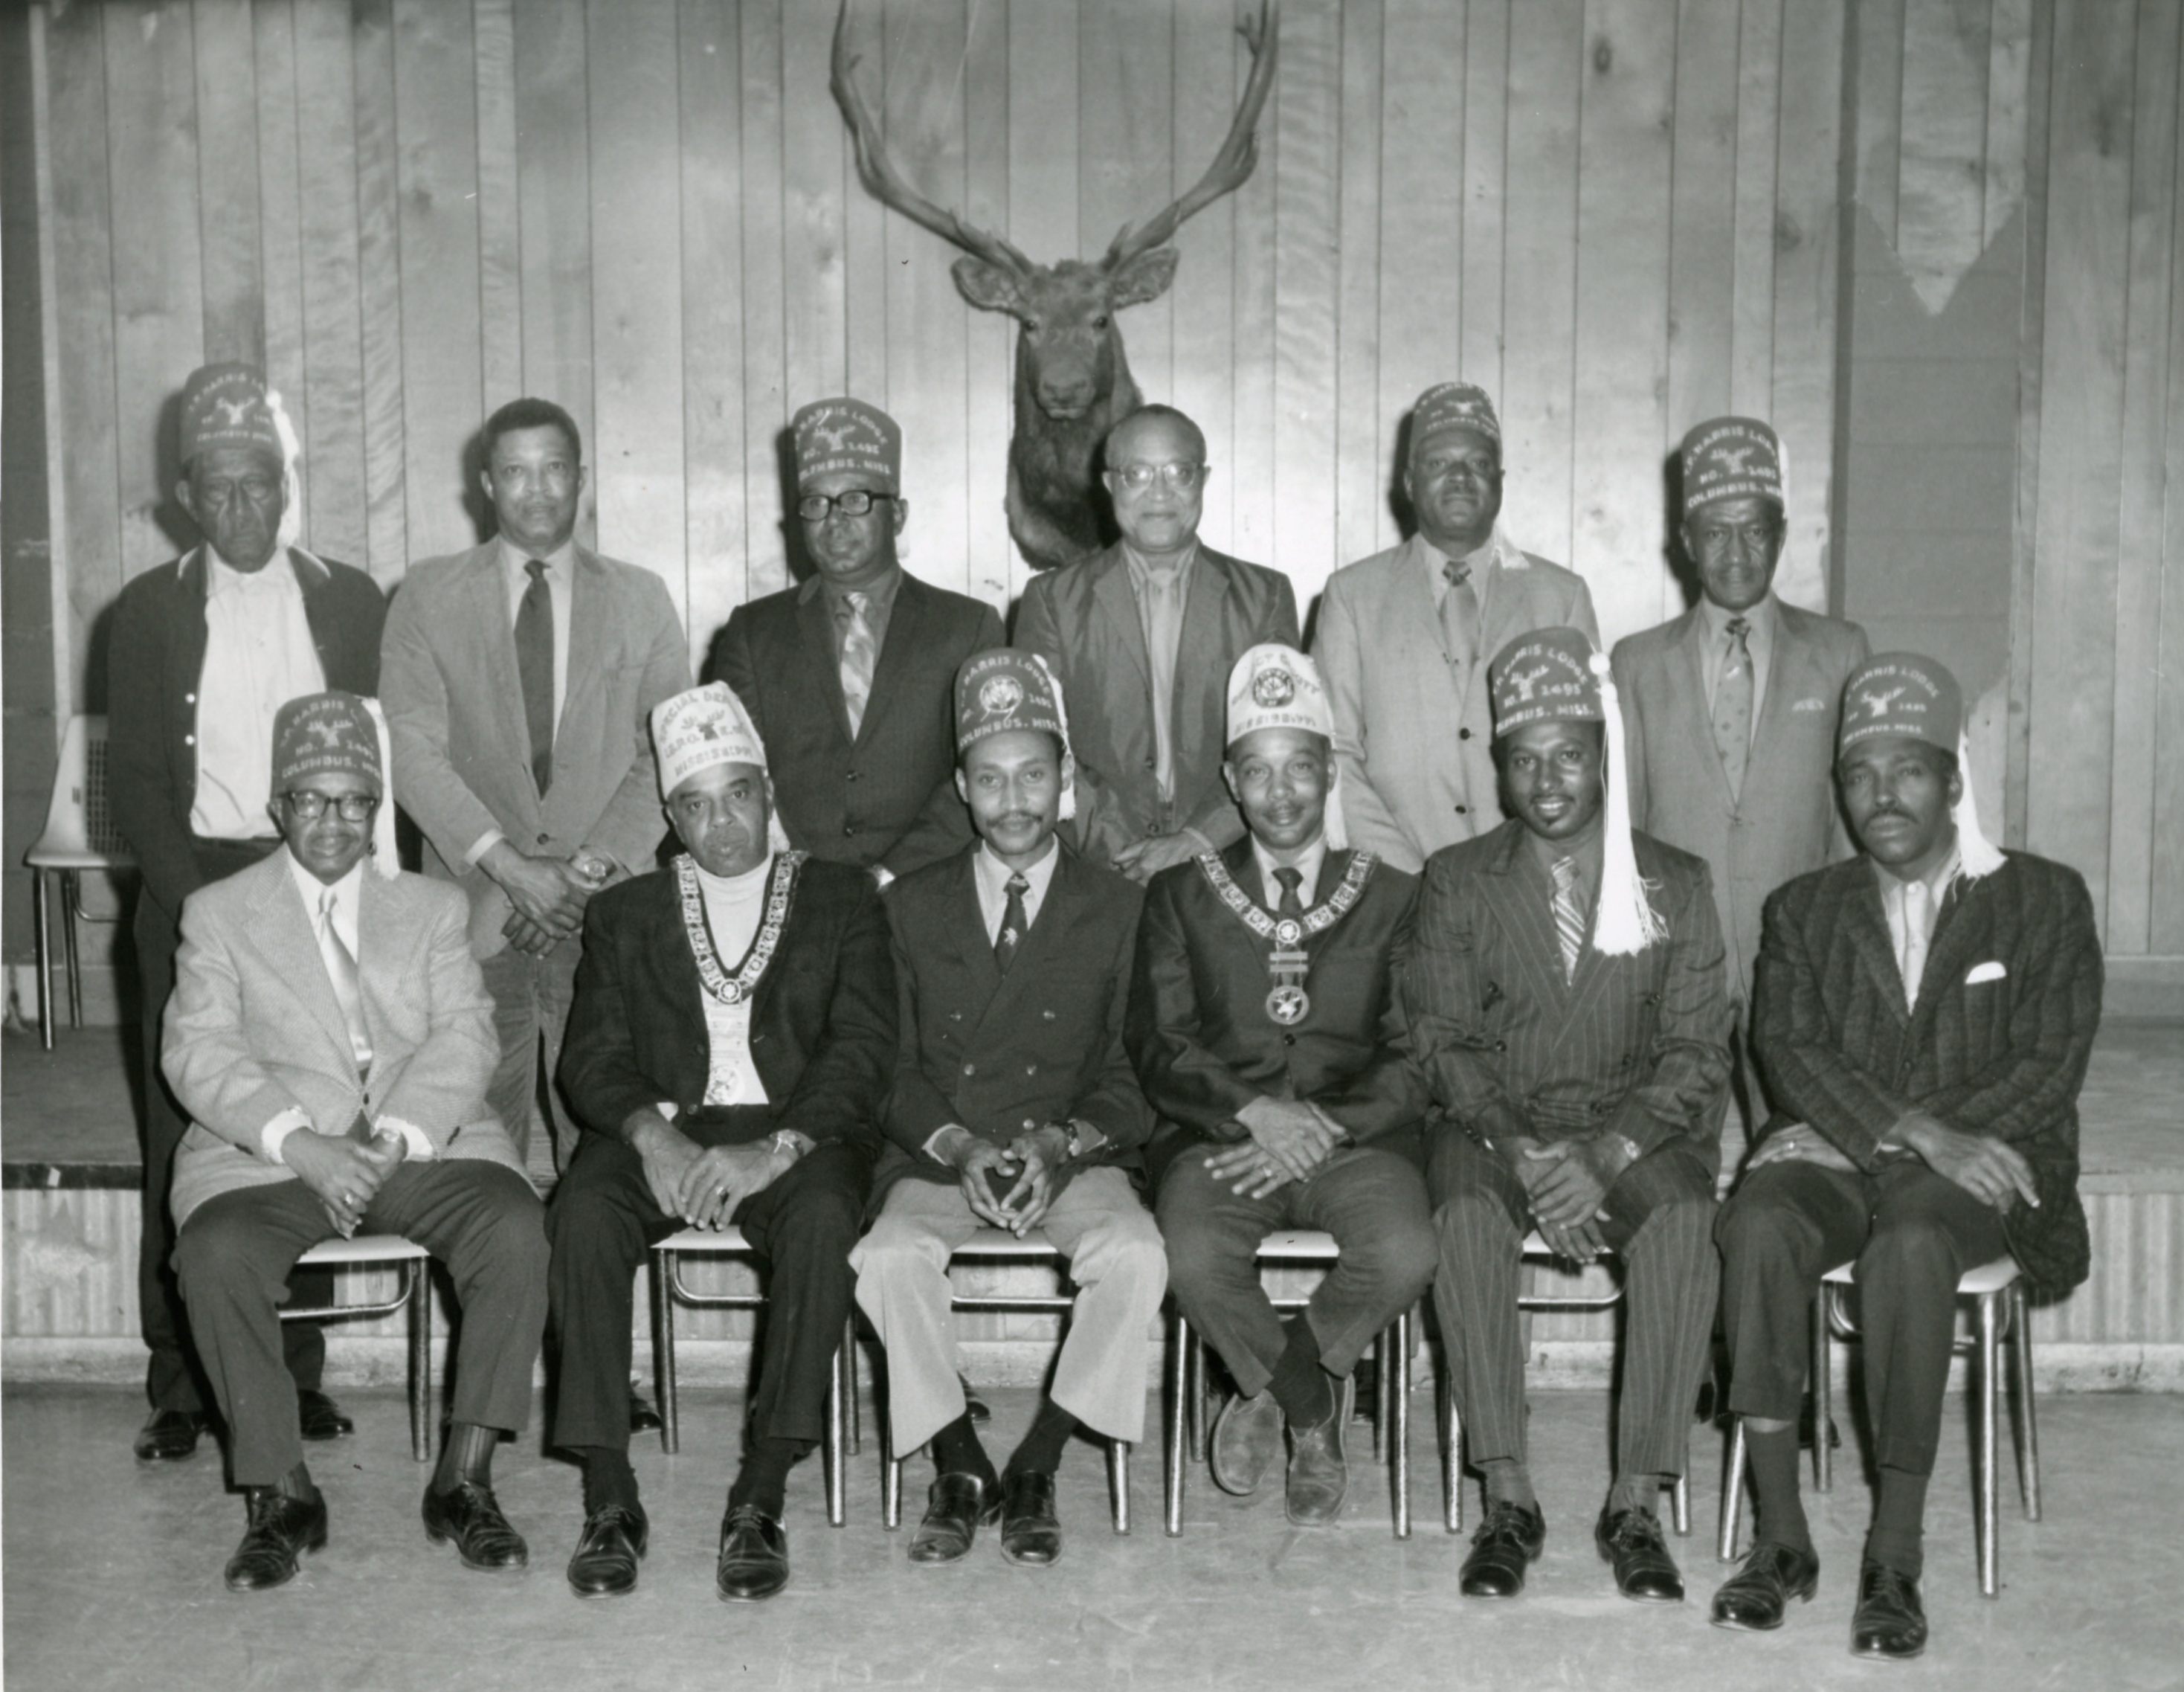 the history and significance of the order of elks Through the elks national foundation, which is the charitable arm of the order, we offer local and national scholarship programs we also offer other youth programs such as the teenager of the month awards, elks drug awareness program , and the elks national hoop shoot free throw contest.